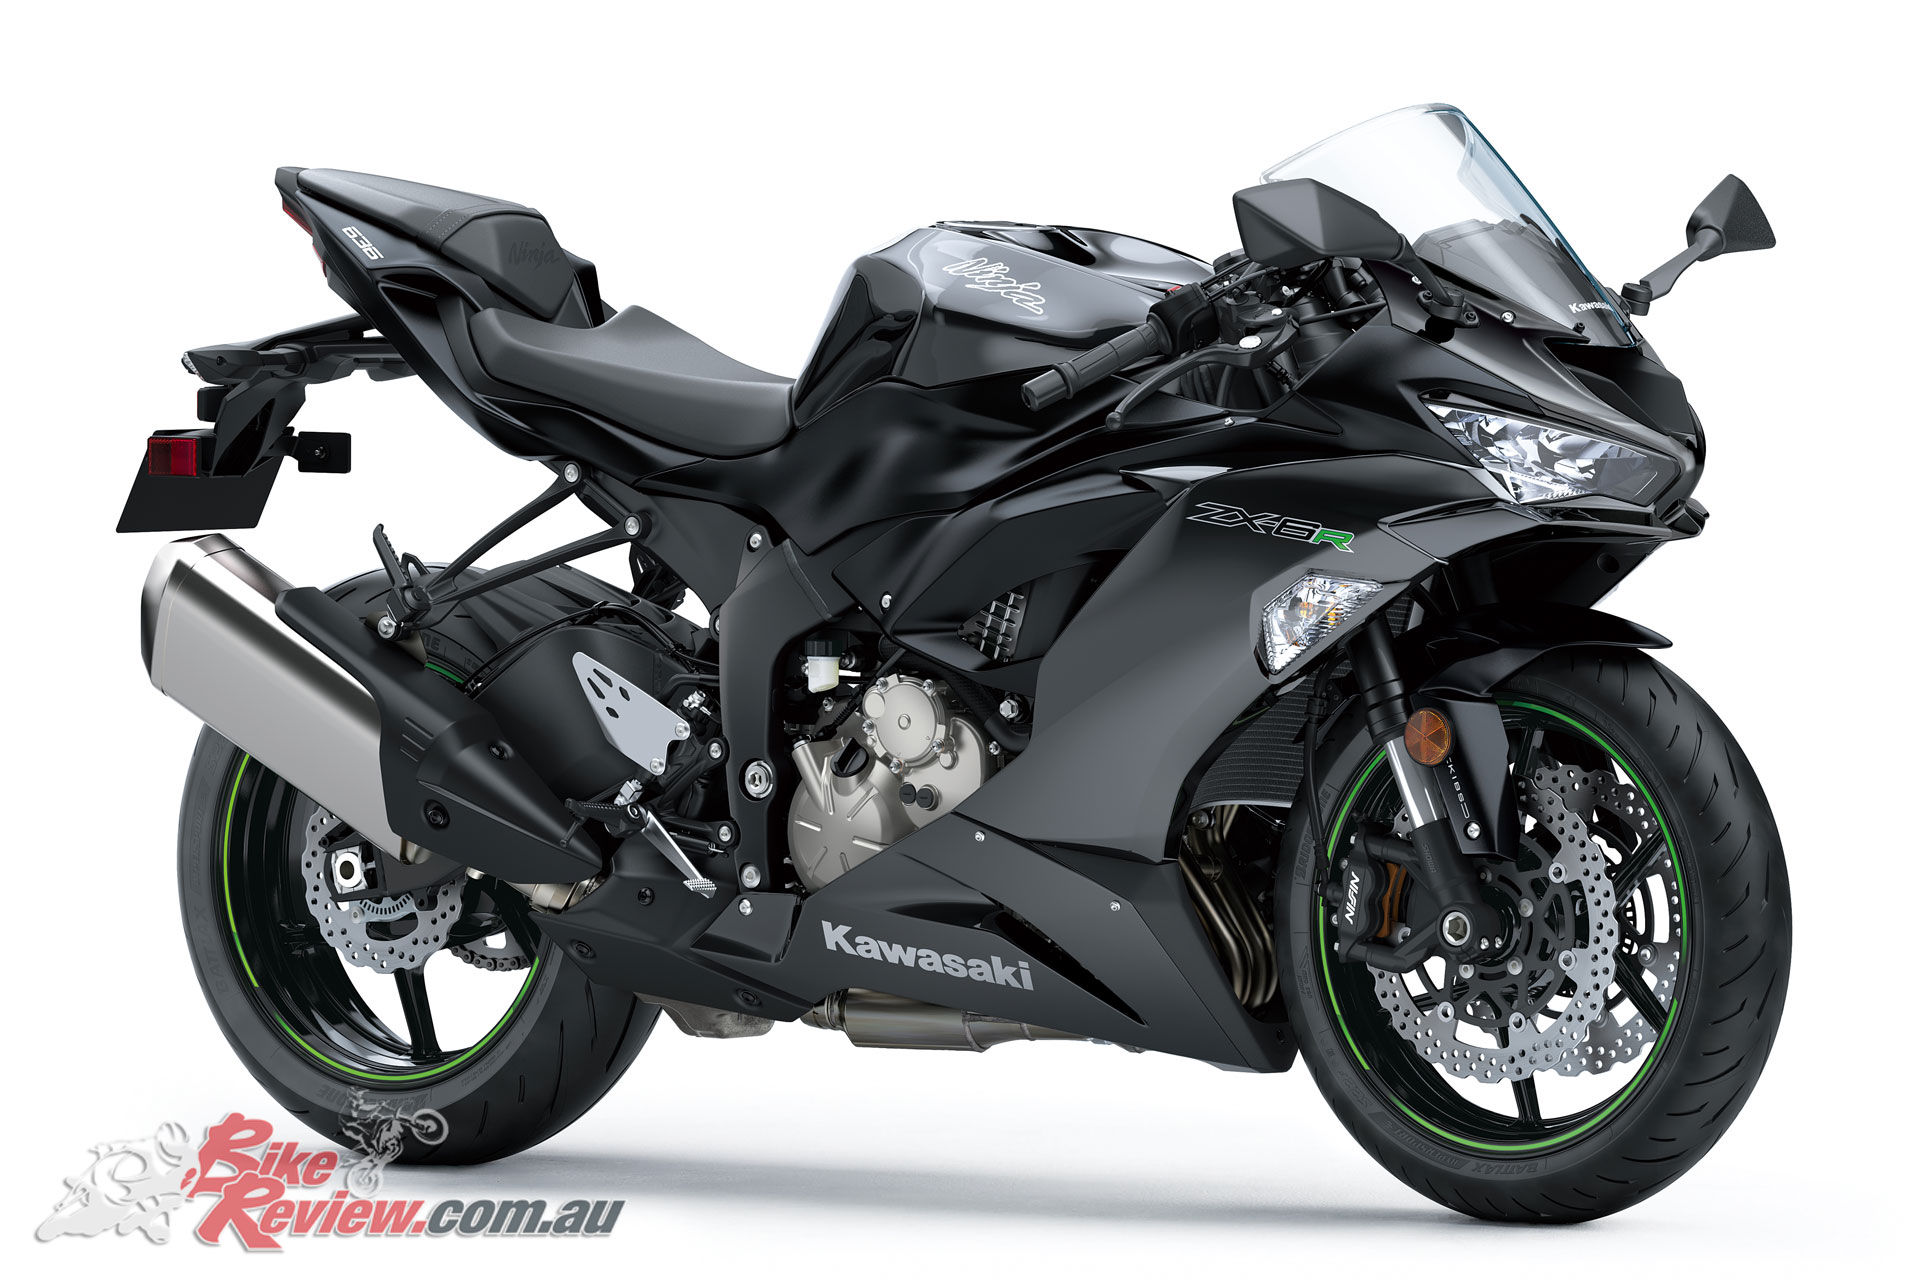 model update 2019 kawasaki ninja zx 6r 636 bike review. Black Bedroom Furniture Sets. Home Design Ideas